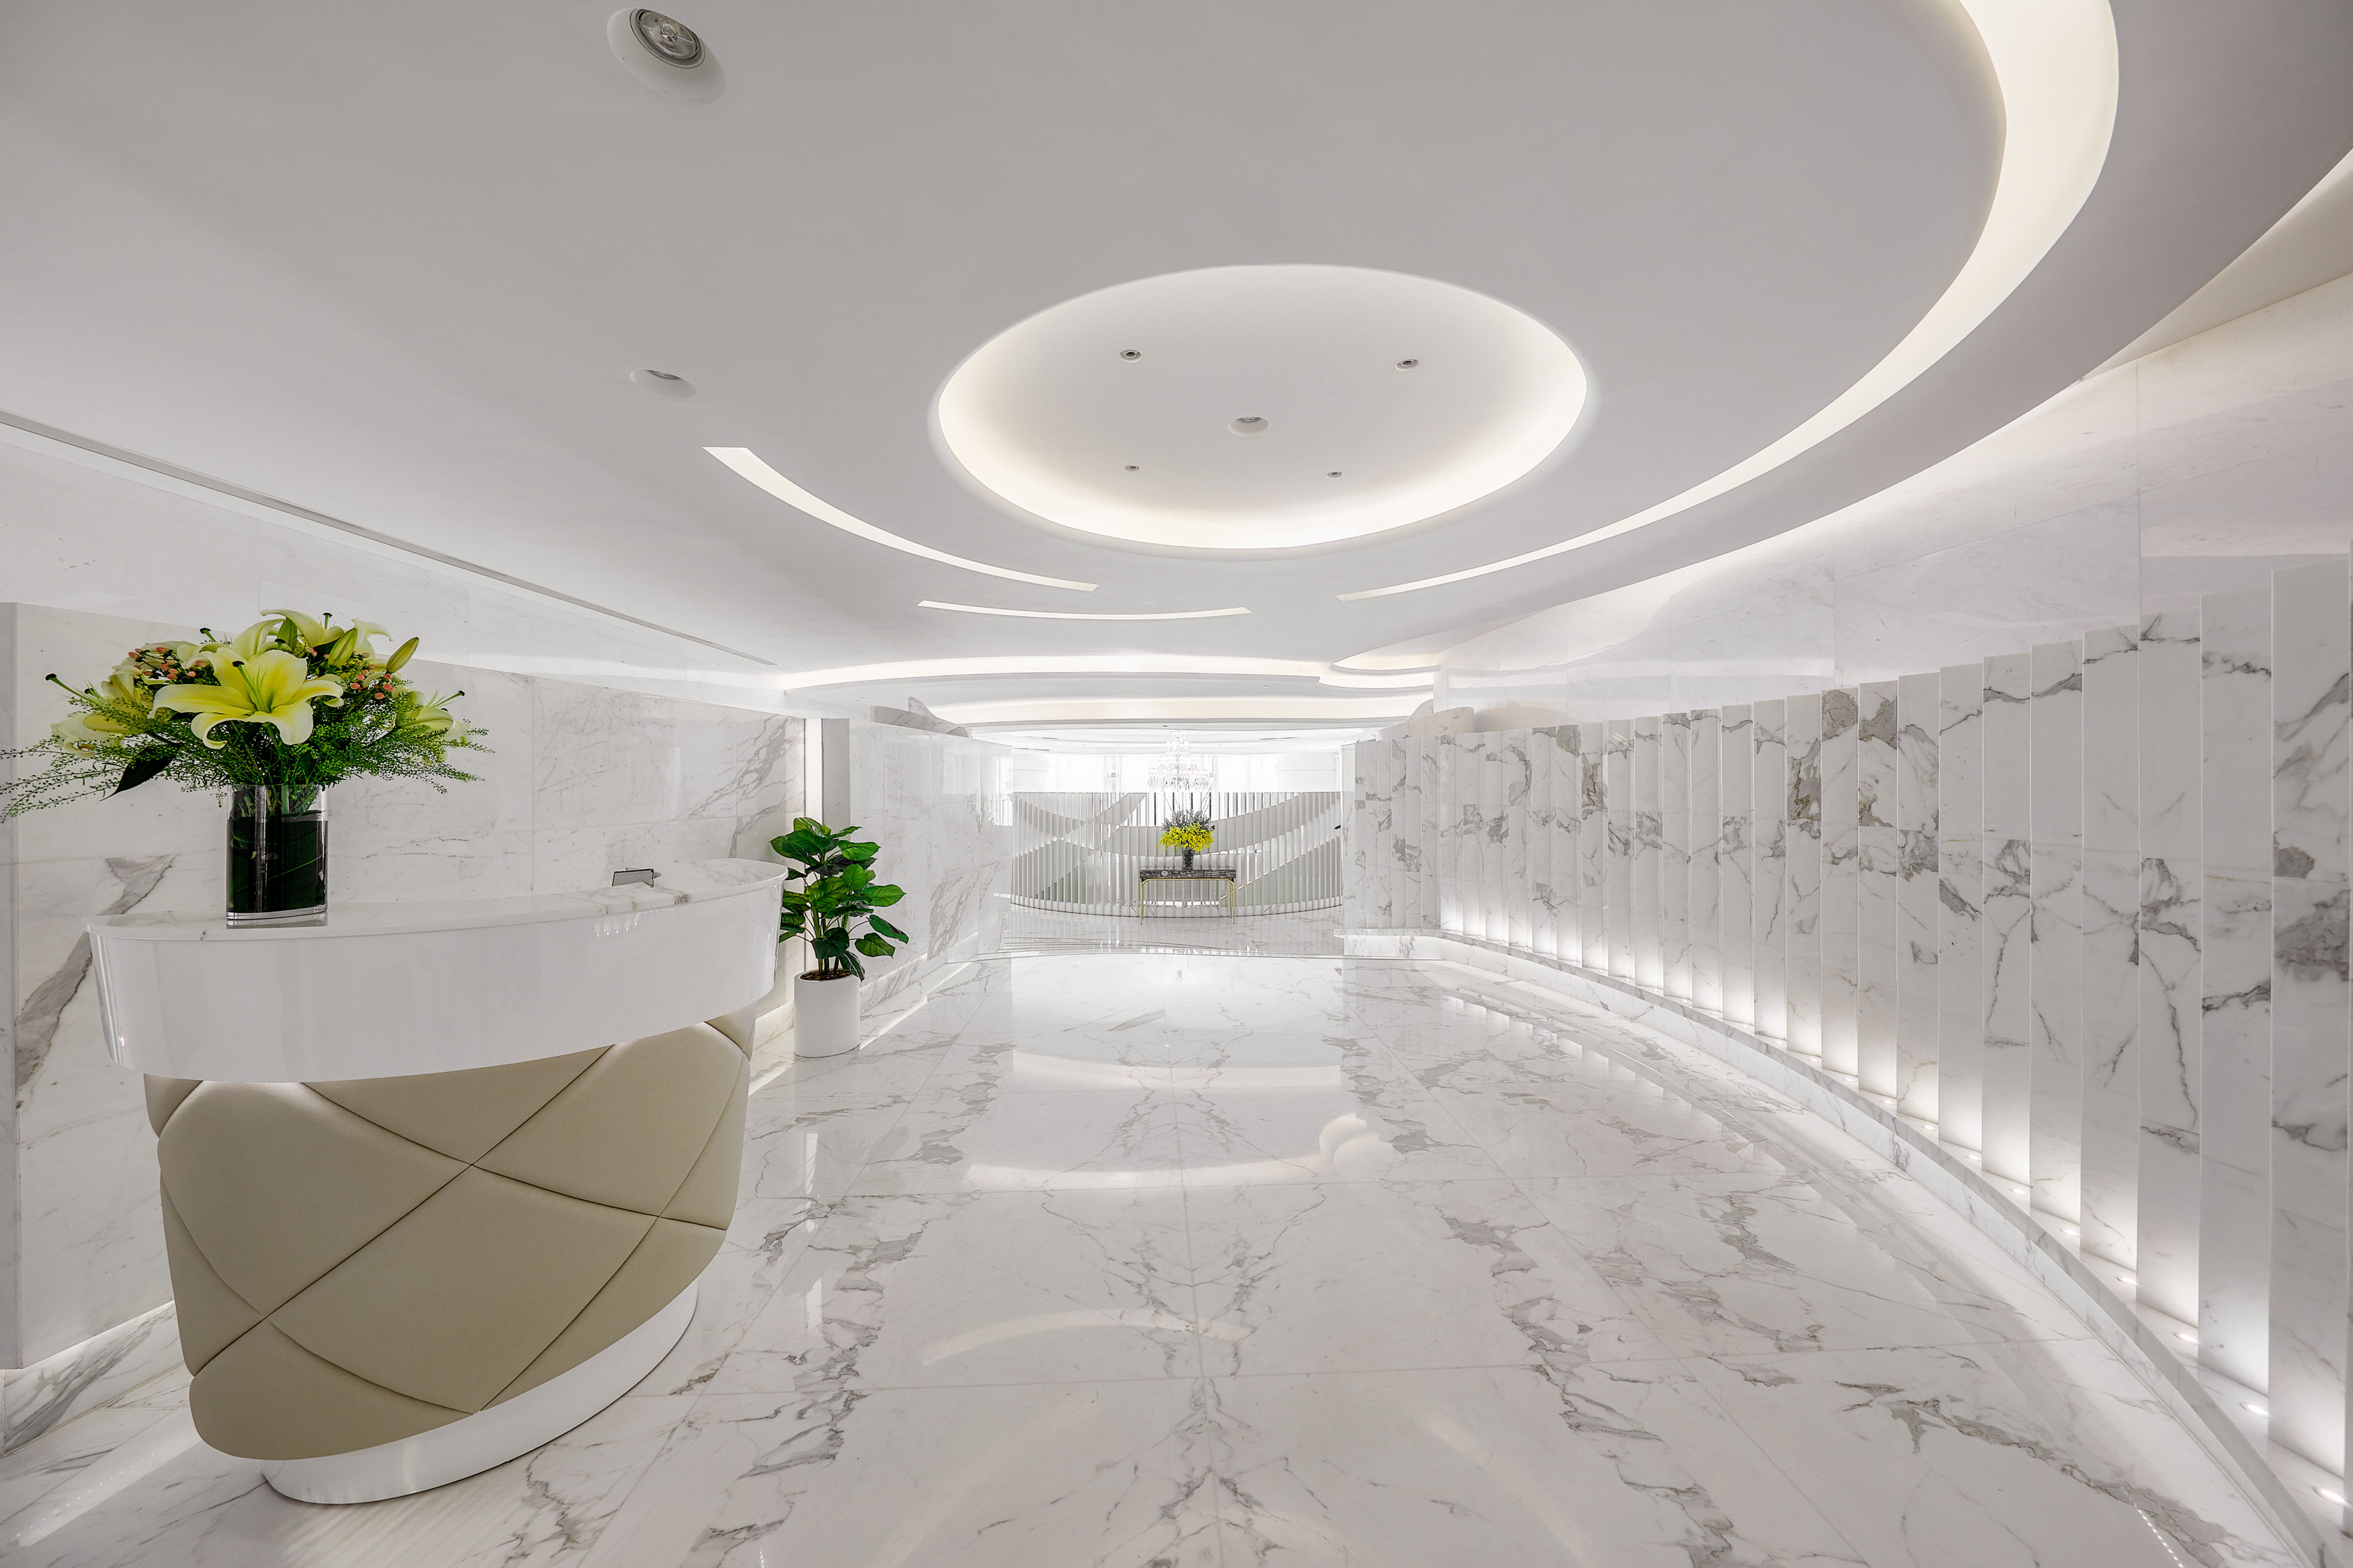 LE PAN is a palace of white marble with playful curves and cream, grey and gold accents.